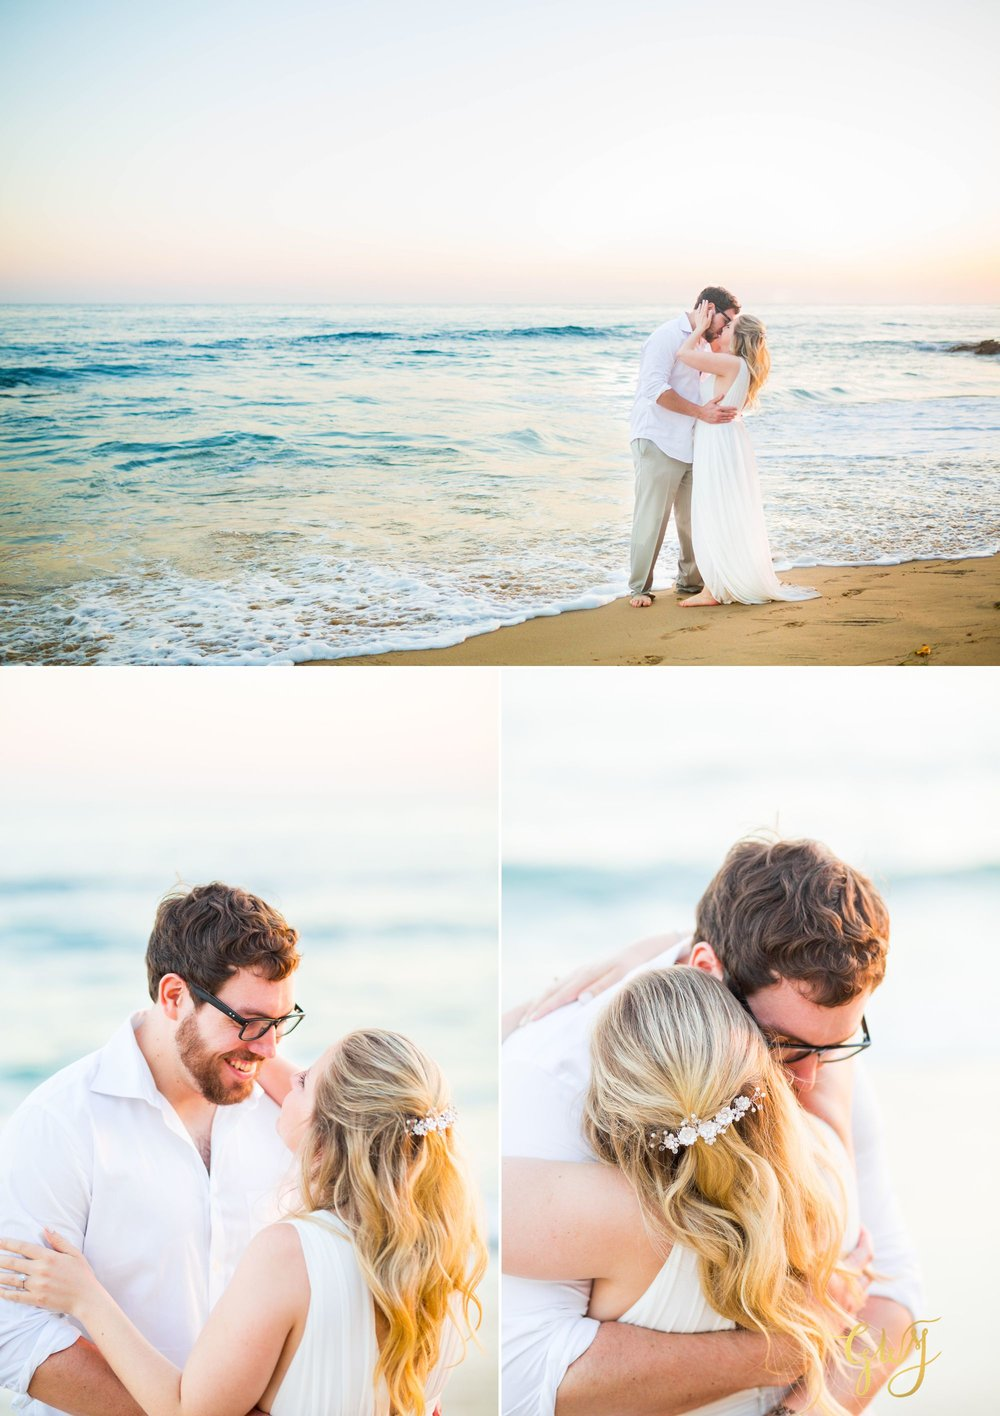 Amanda + Joe Reef Point Crystal Cove Newport Beach Sunset Romantic Intimate Elopement by Glass Woods Media 18.jpg